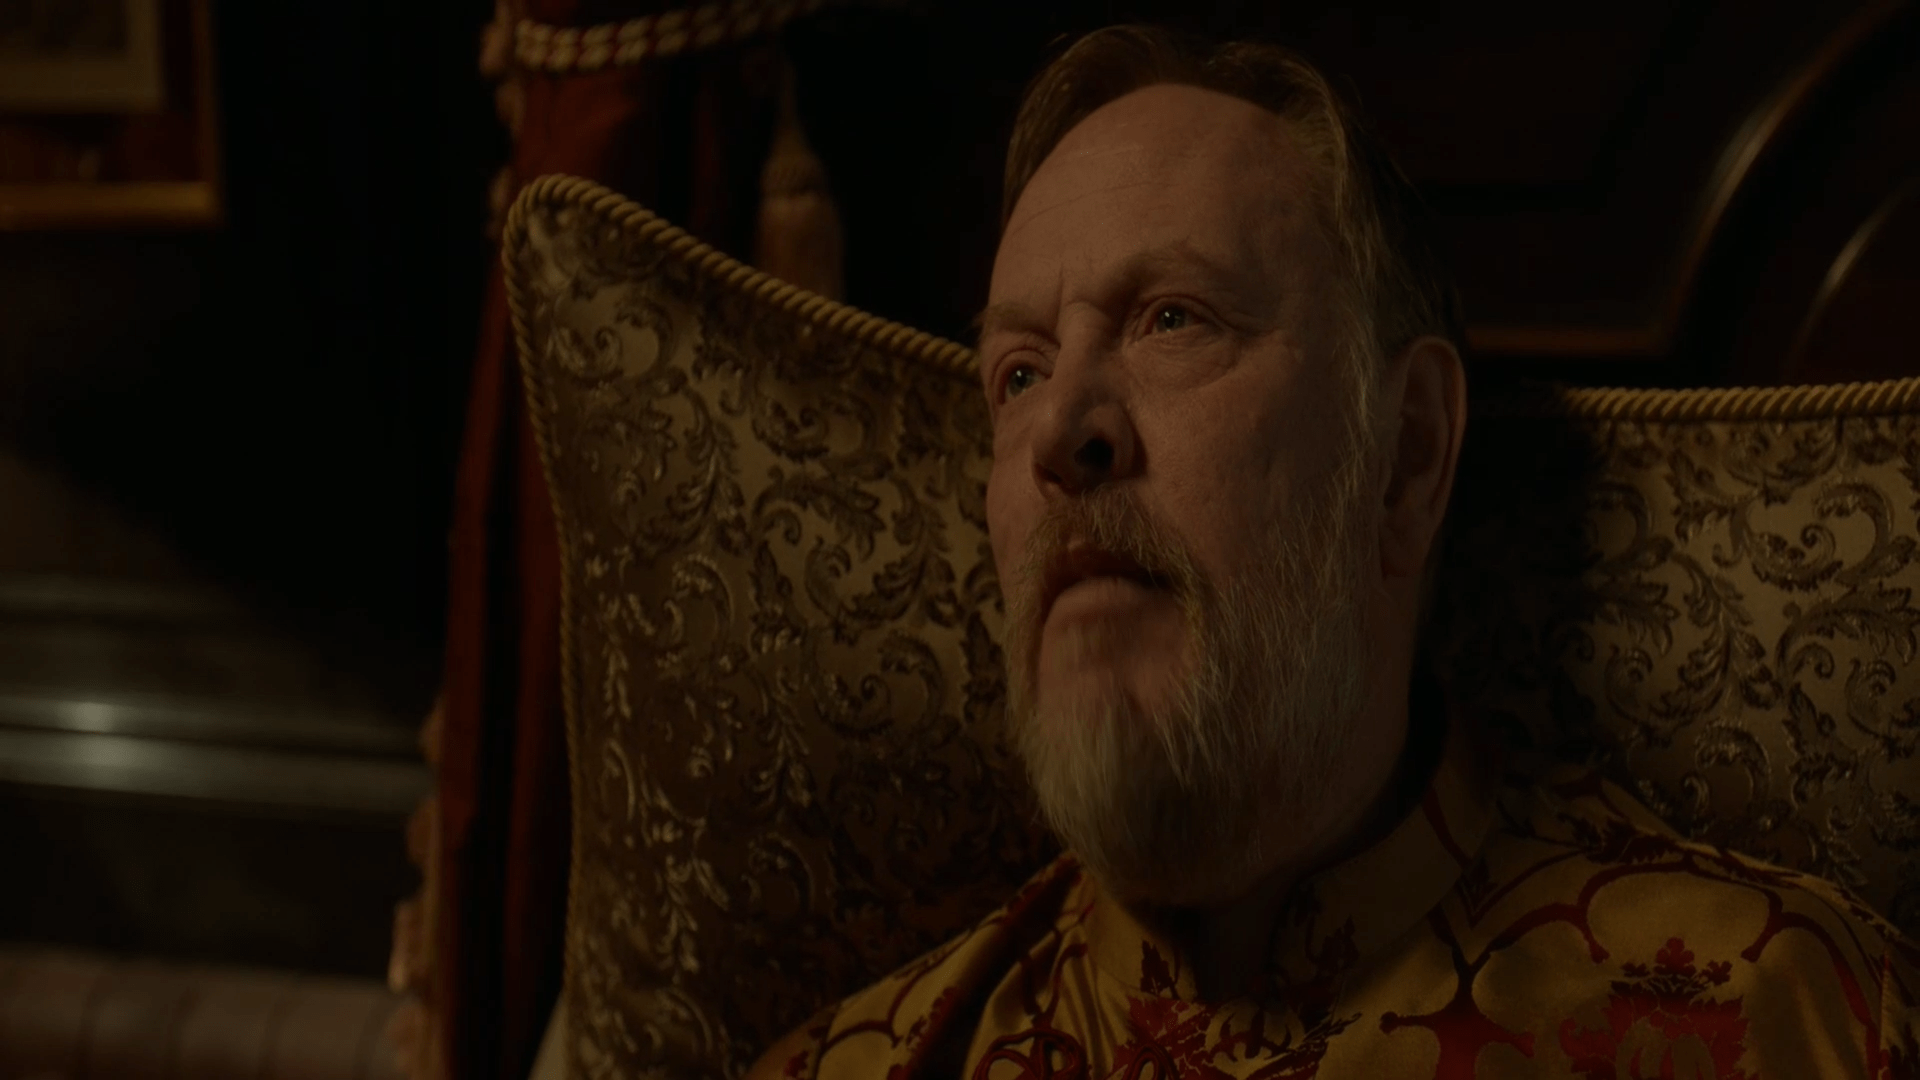 Absalom Breakspear (Jared Harris)